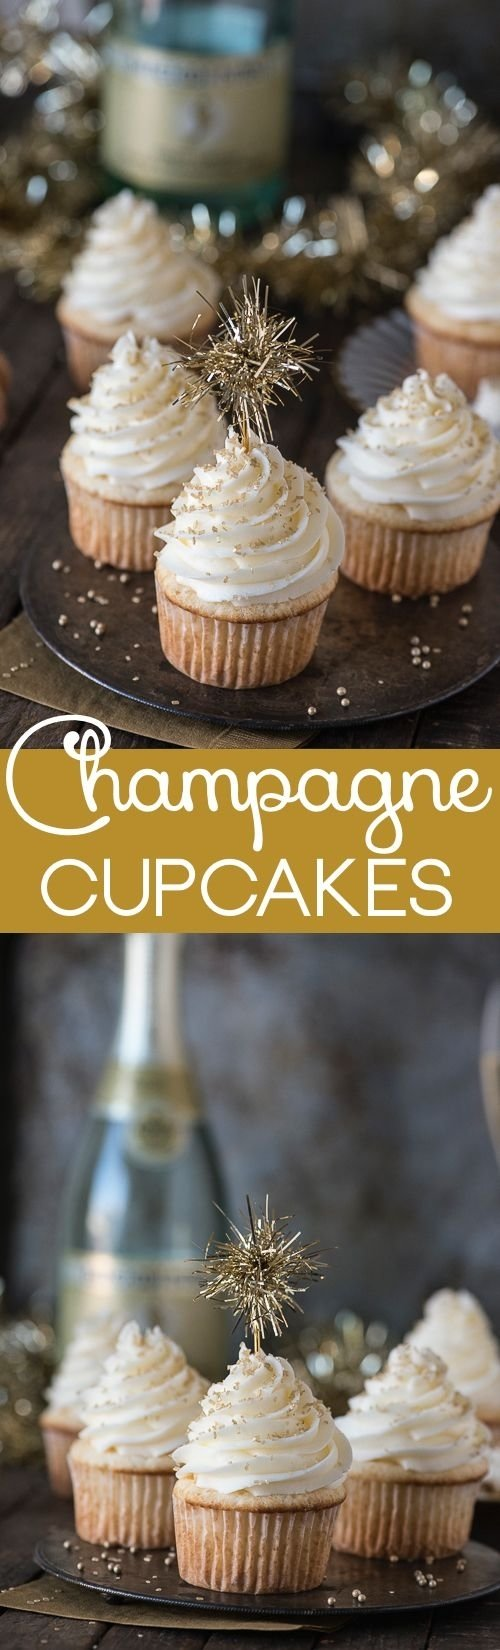 10 Ideal New Years Eve Desserts Party Ideas 1137 best new year 2018 images on pinterest happy new year happy 2020